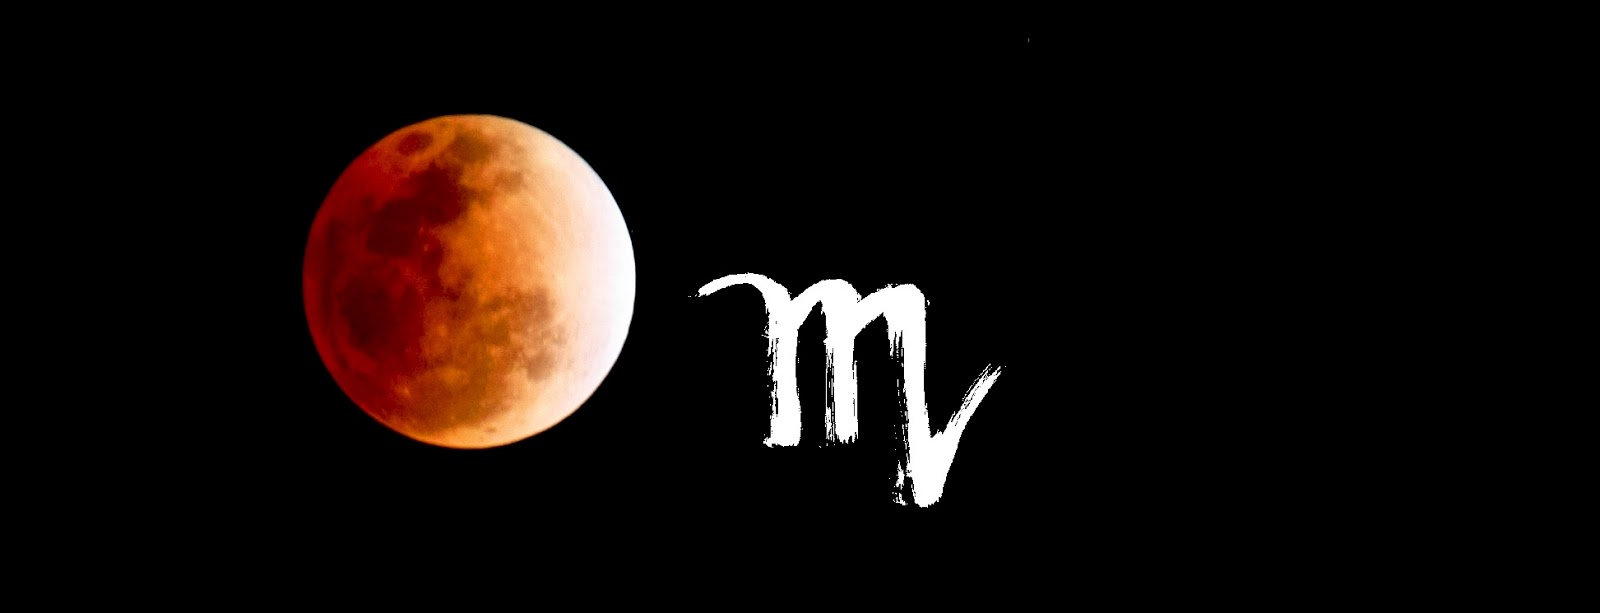 blood moon meaning for scorpio -#main